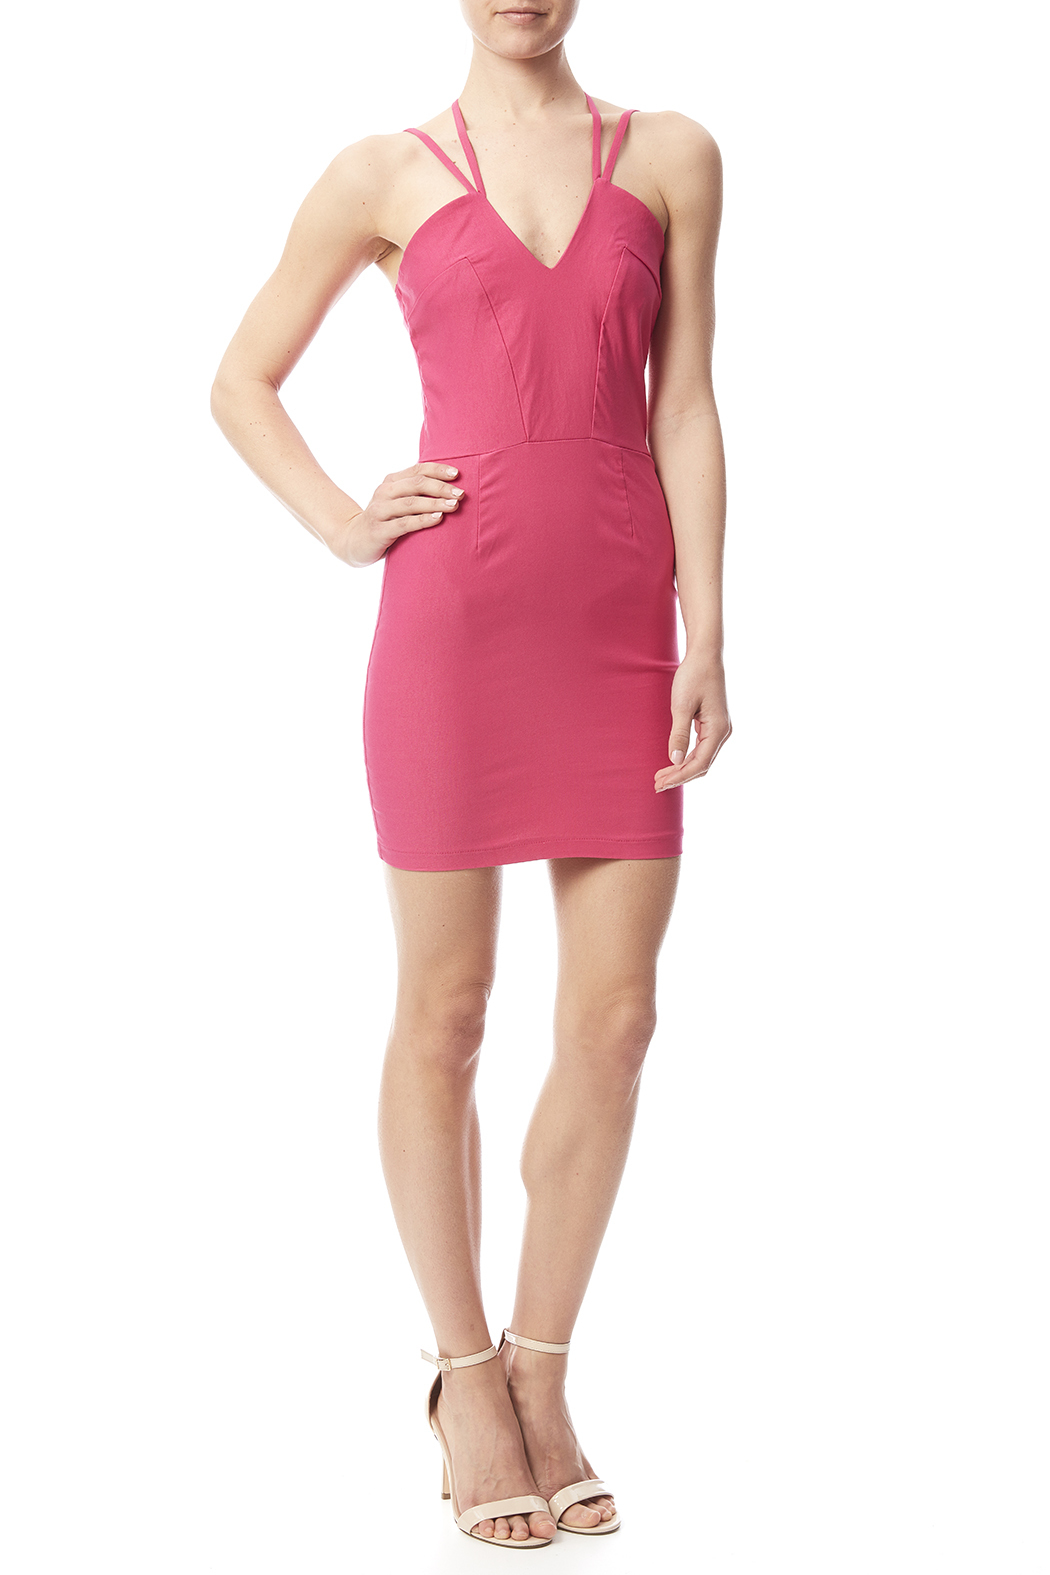 W by Wenjie Pink Cross-Back Dress - Front Full Image